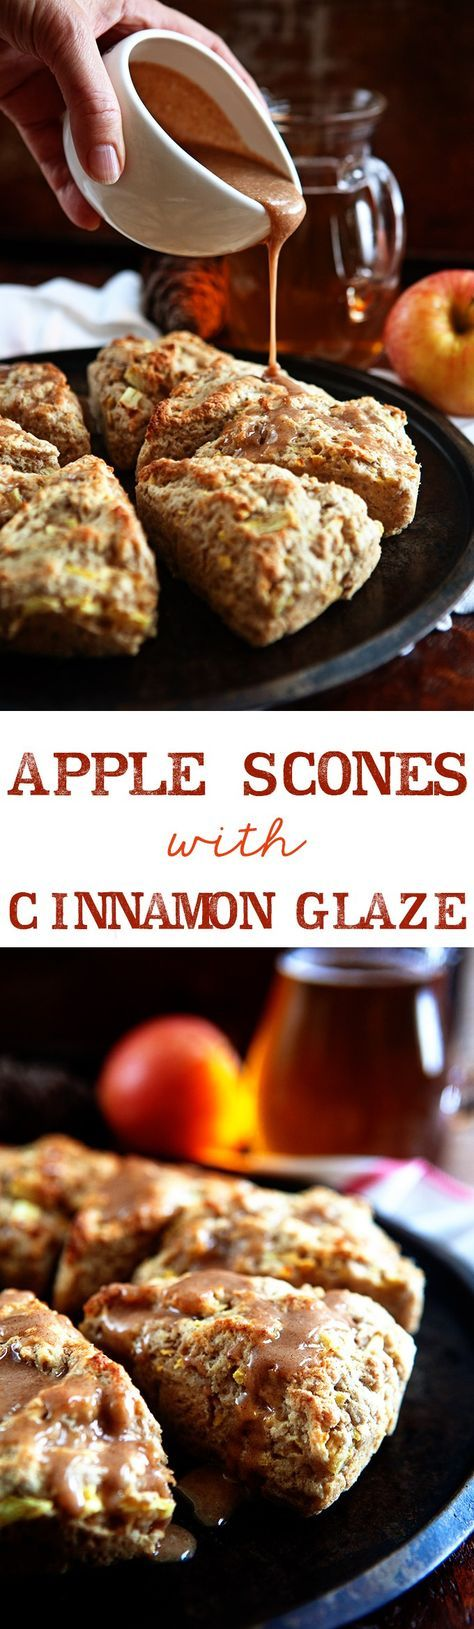 Apple Scones with Apple Cider Cinnamon Glaze - Some the Wiser